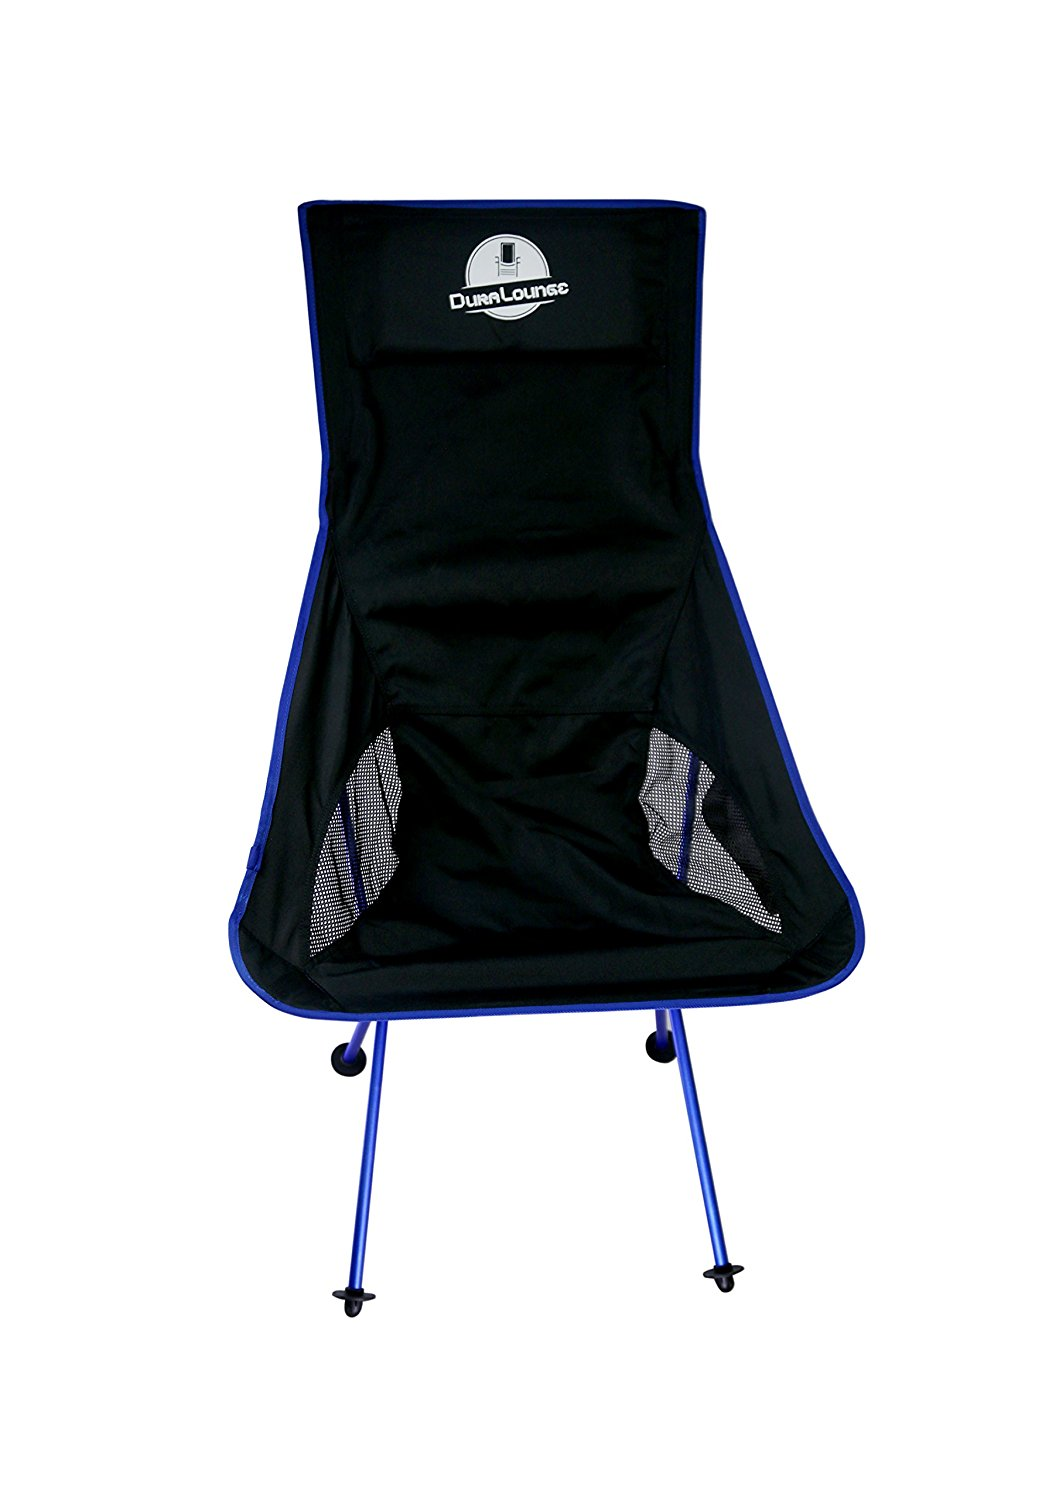 DuraLounge Premium Outdoor Camping Chair (Portable) Compact | Breathable Mesh Pockets, Bucket Seat | Travel, Sports, Beach, Lake, Hiking | Incl. Storage Bag